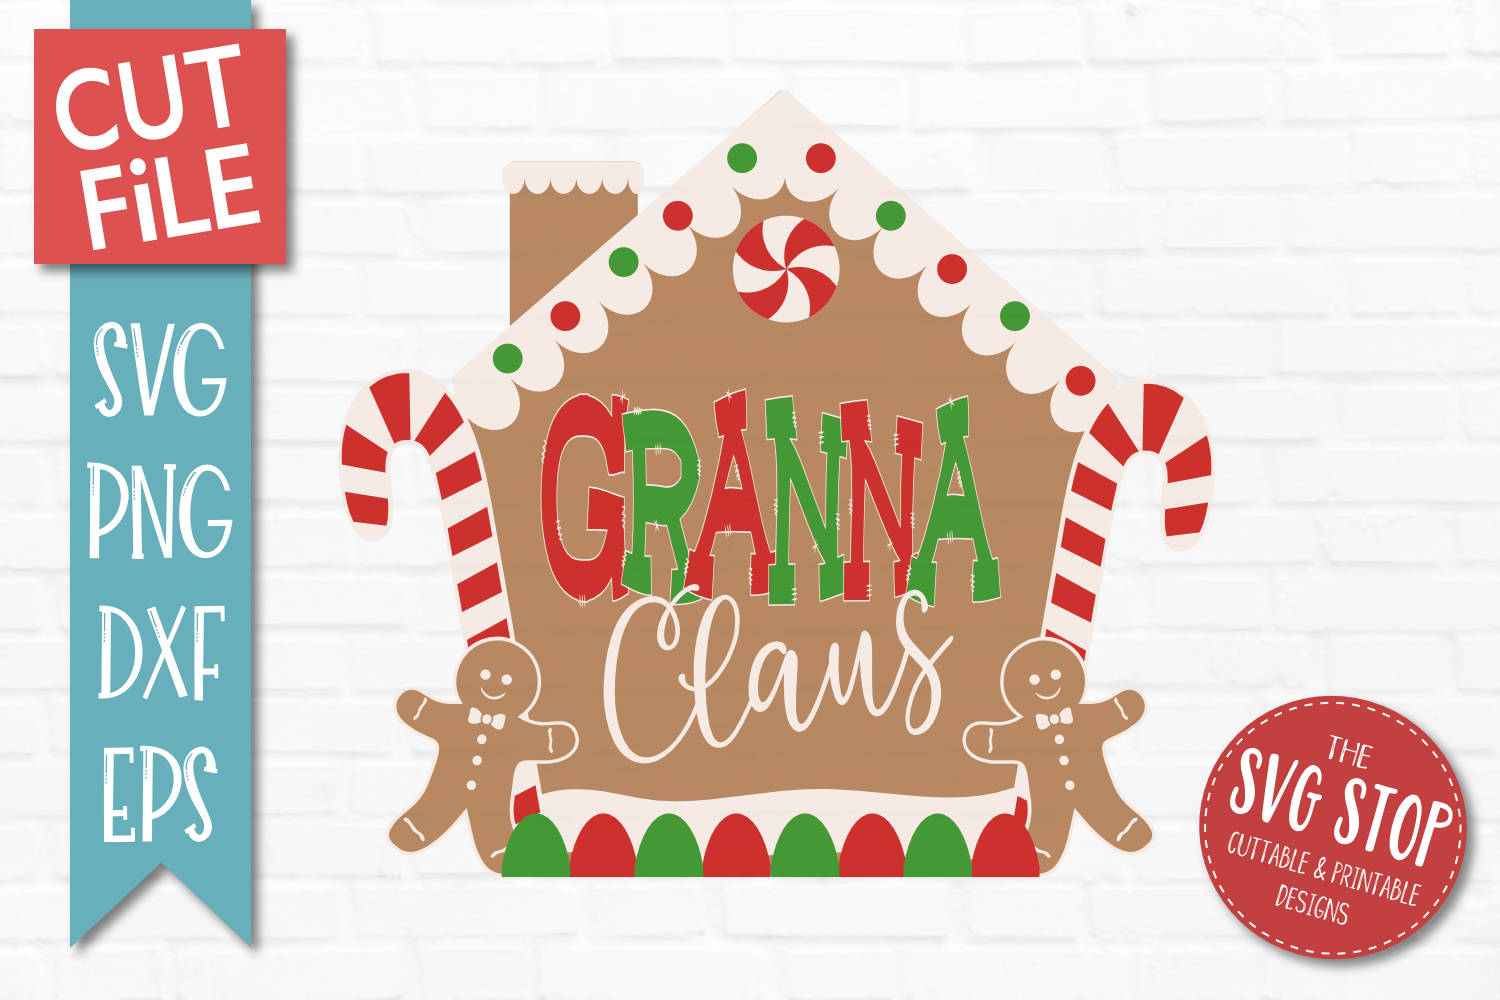 Granny Claus Gingerbread Christmas SVG, PNG, DXF, EPS example image 1